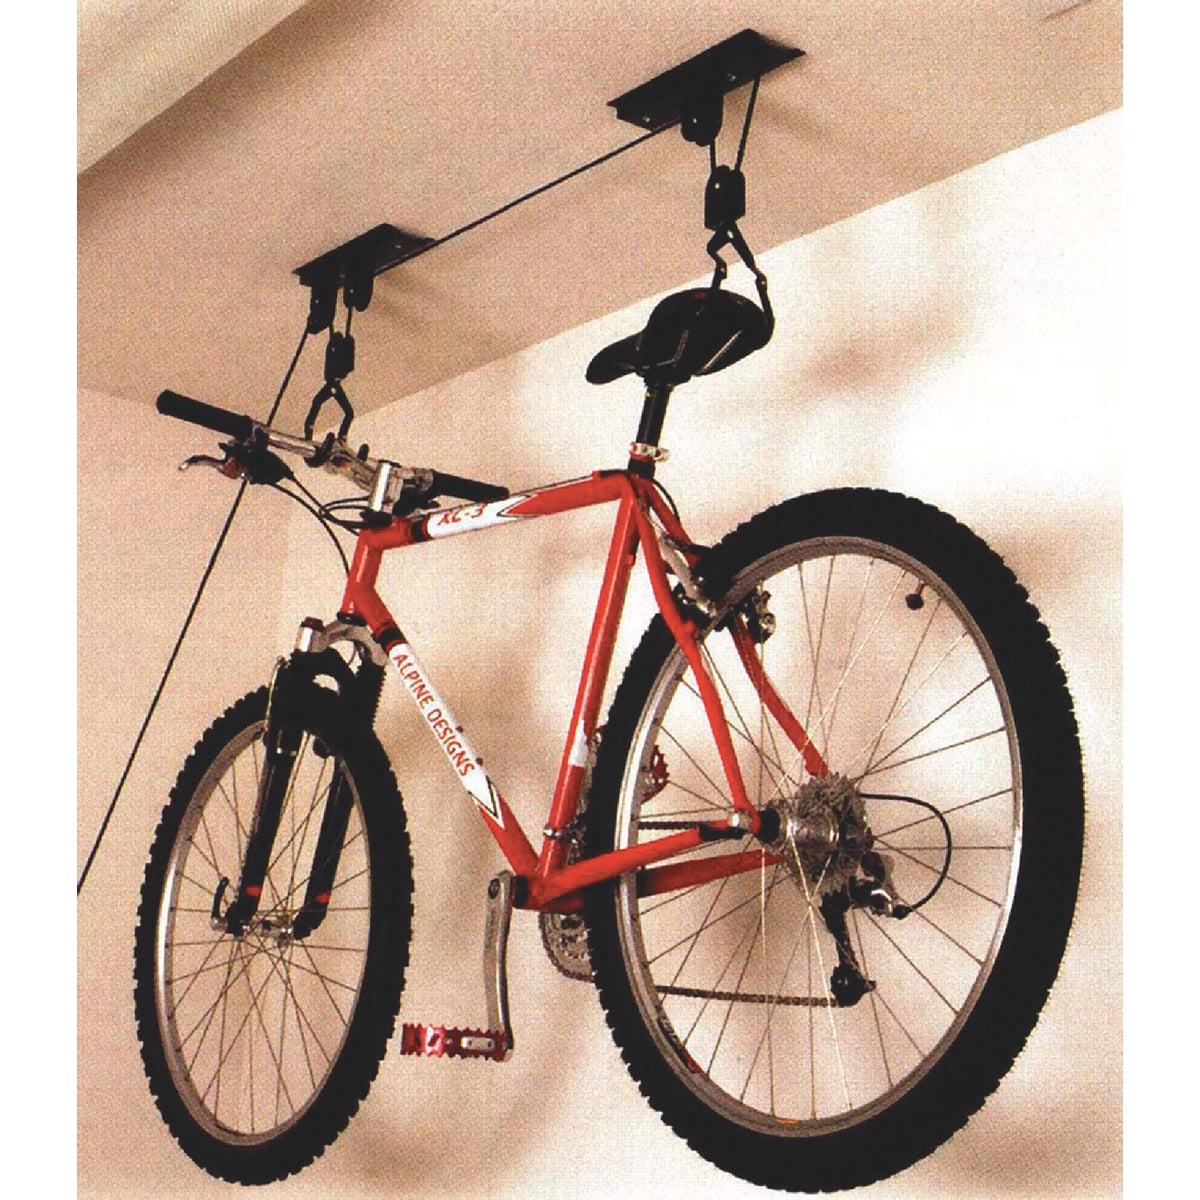 CEILING MOUNT BIKE LIFT - PBH1R by Itw Brands